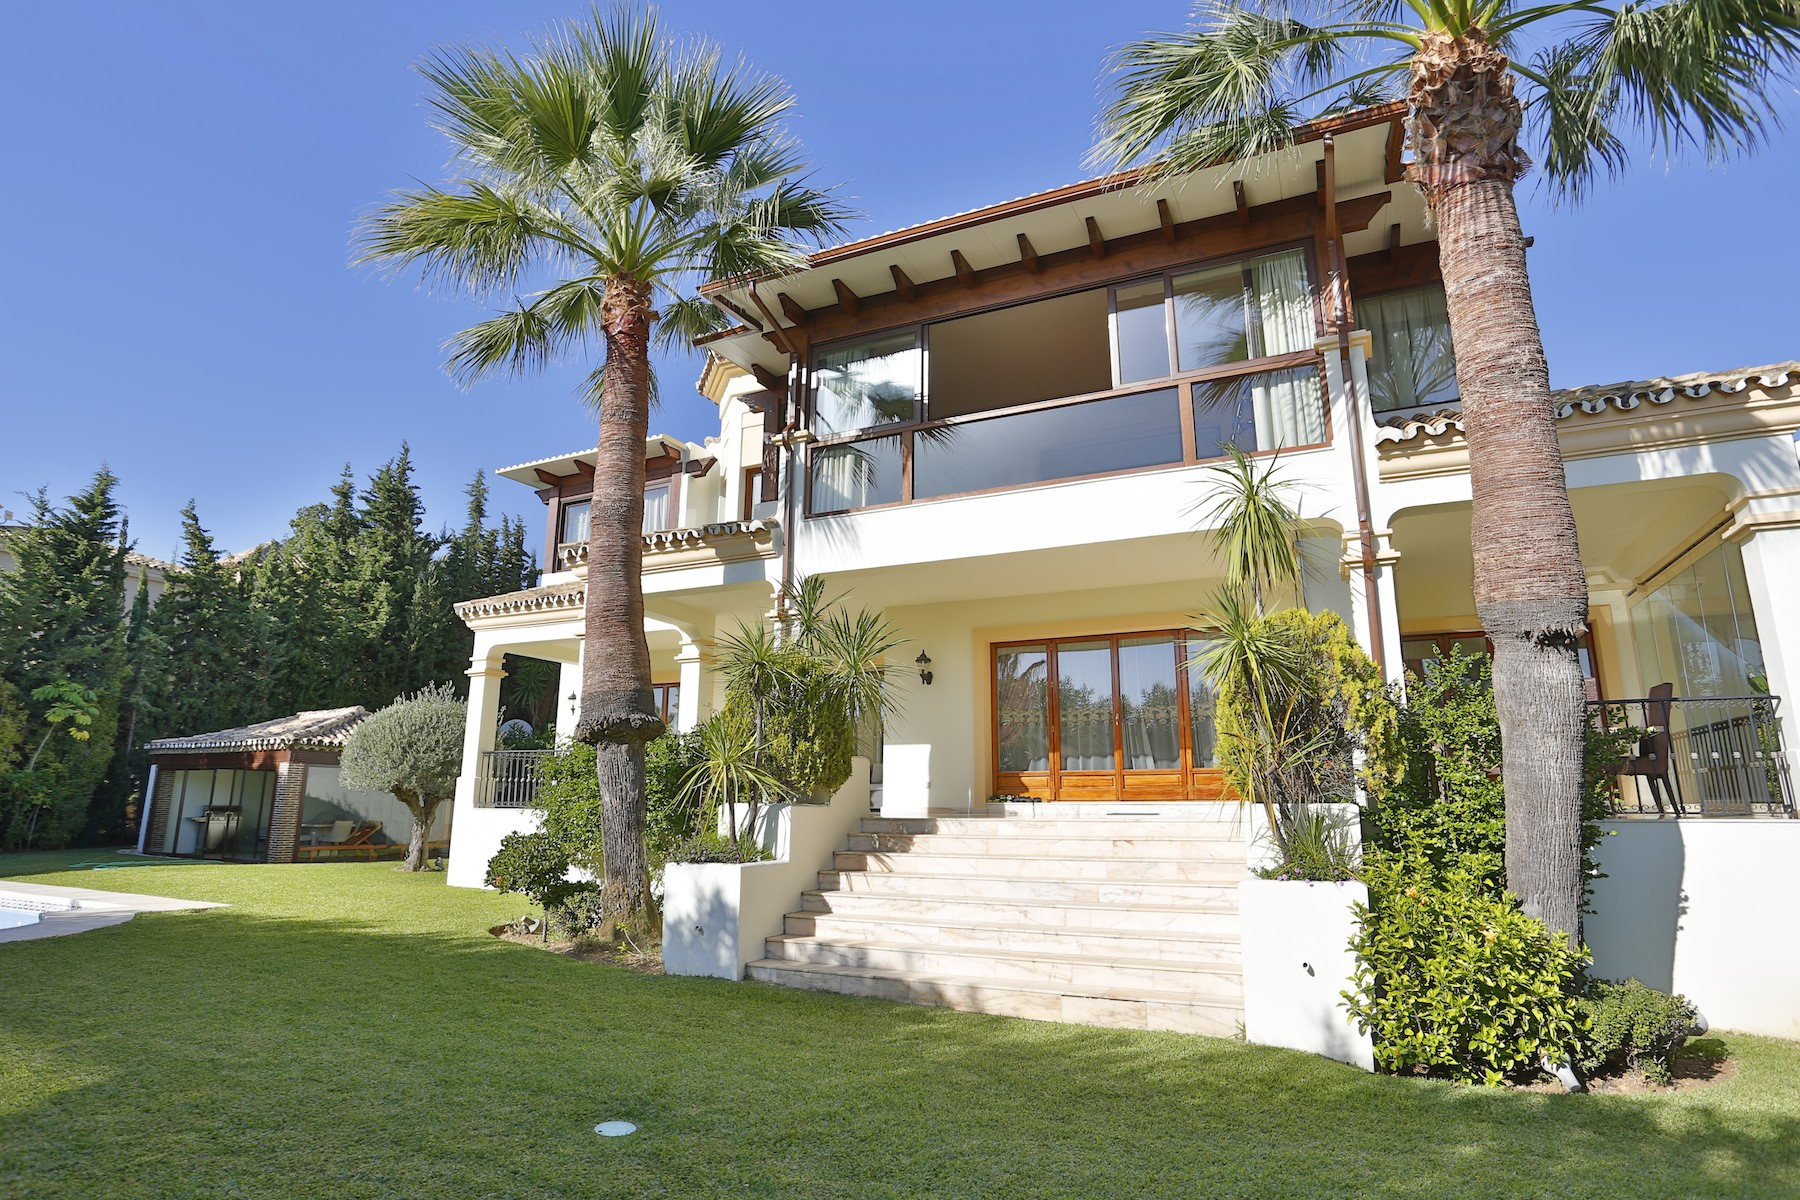 Single Family Home for Sale at Elegant villa situated in the best sought after residential area in Marbella Sierra Blanca, Marbella, Costa Del Sol, 29600 Spain